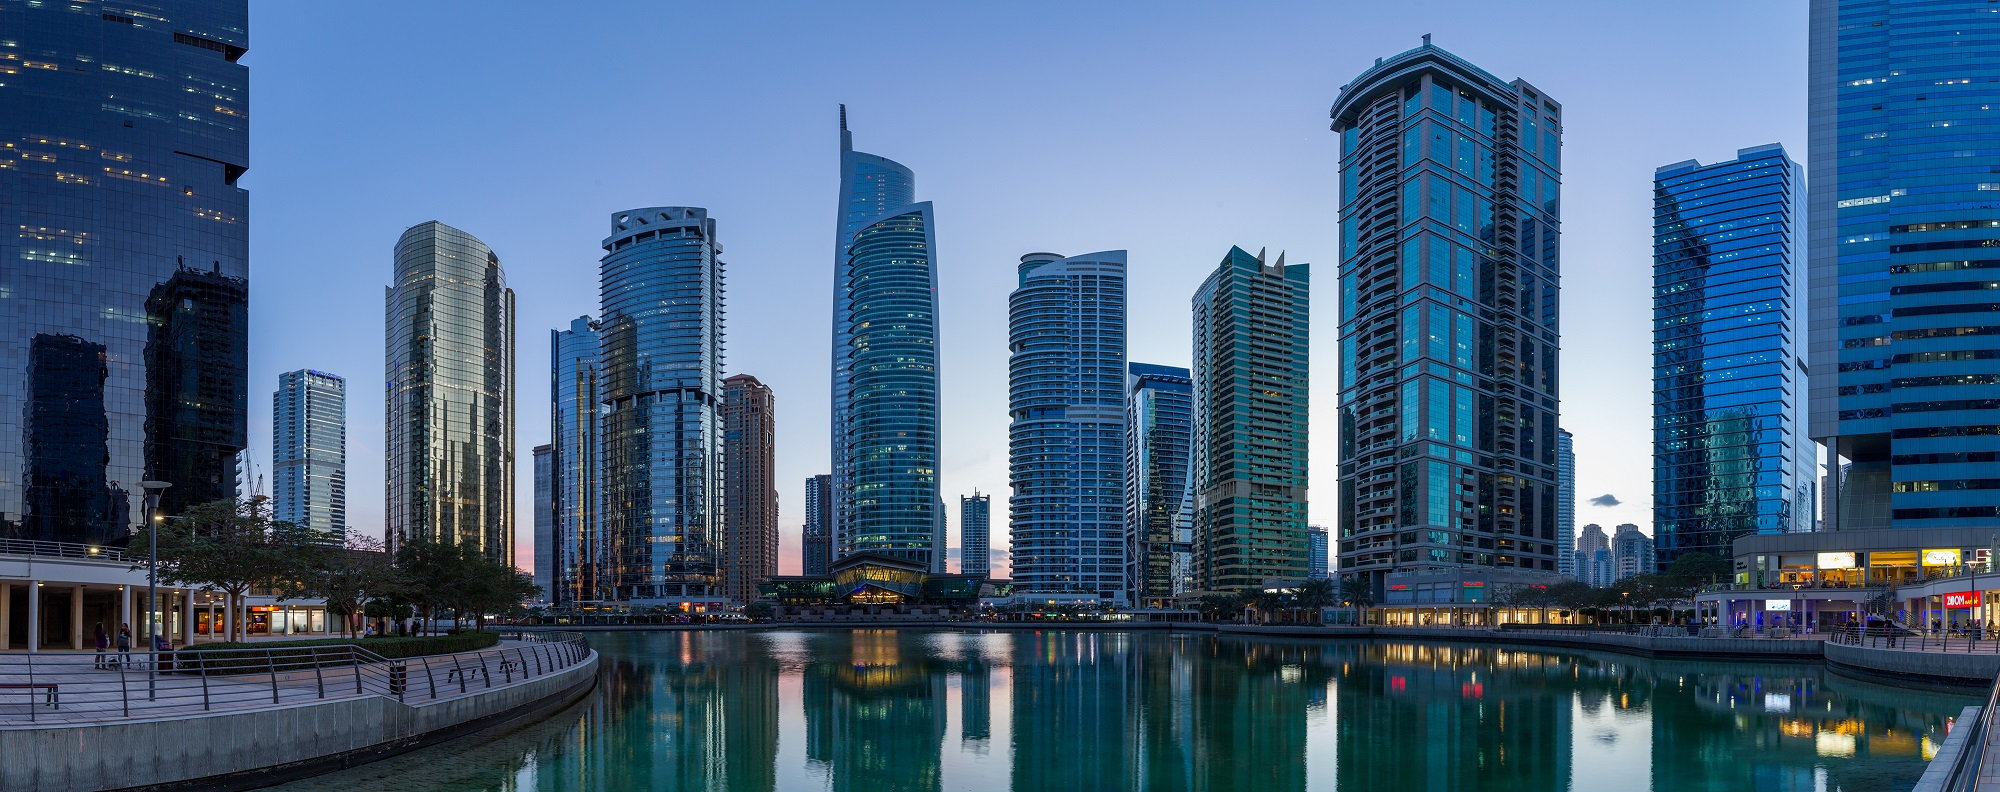 Photo: DMCC welcomes 805 new companies in first half of 2020 and strengthens ties with China and tech